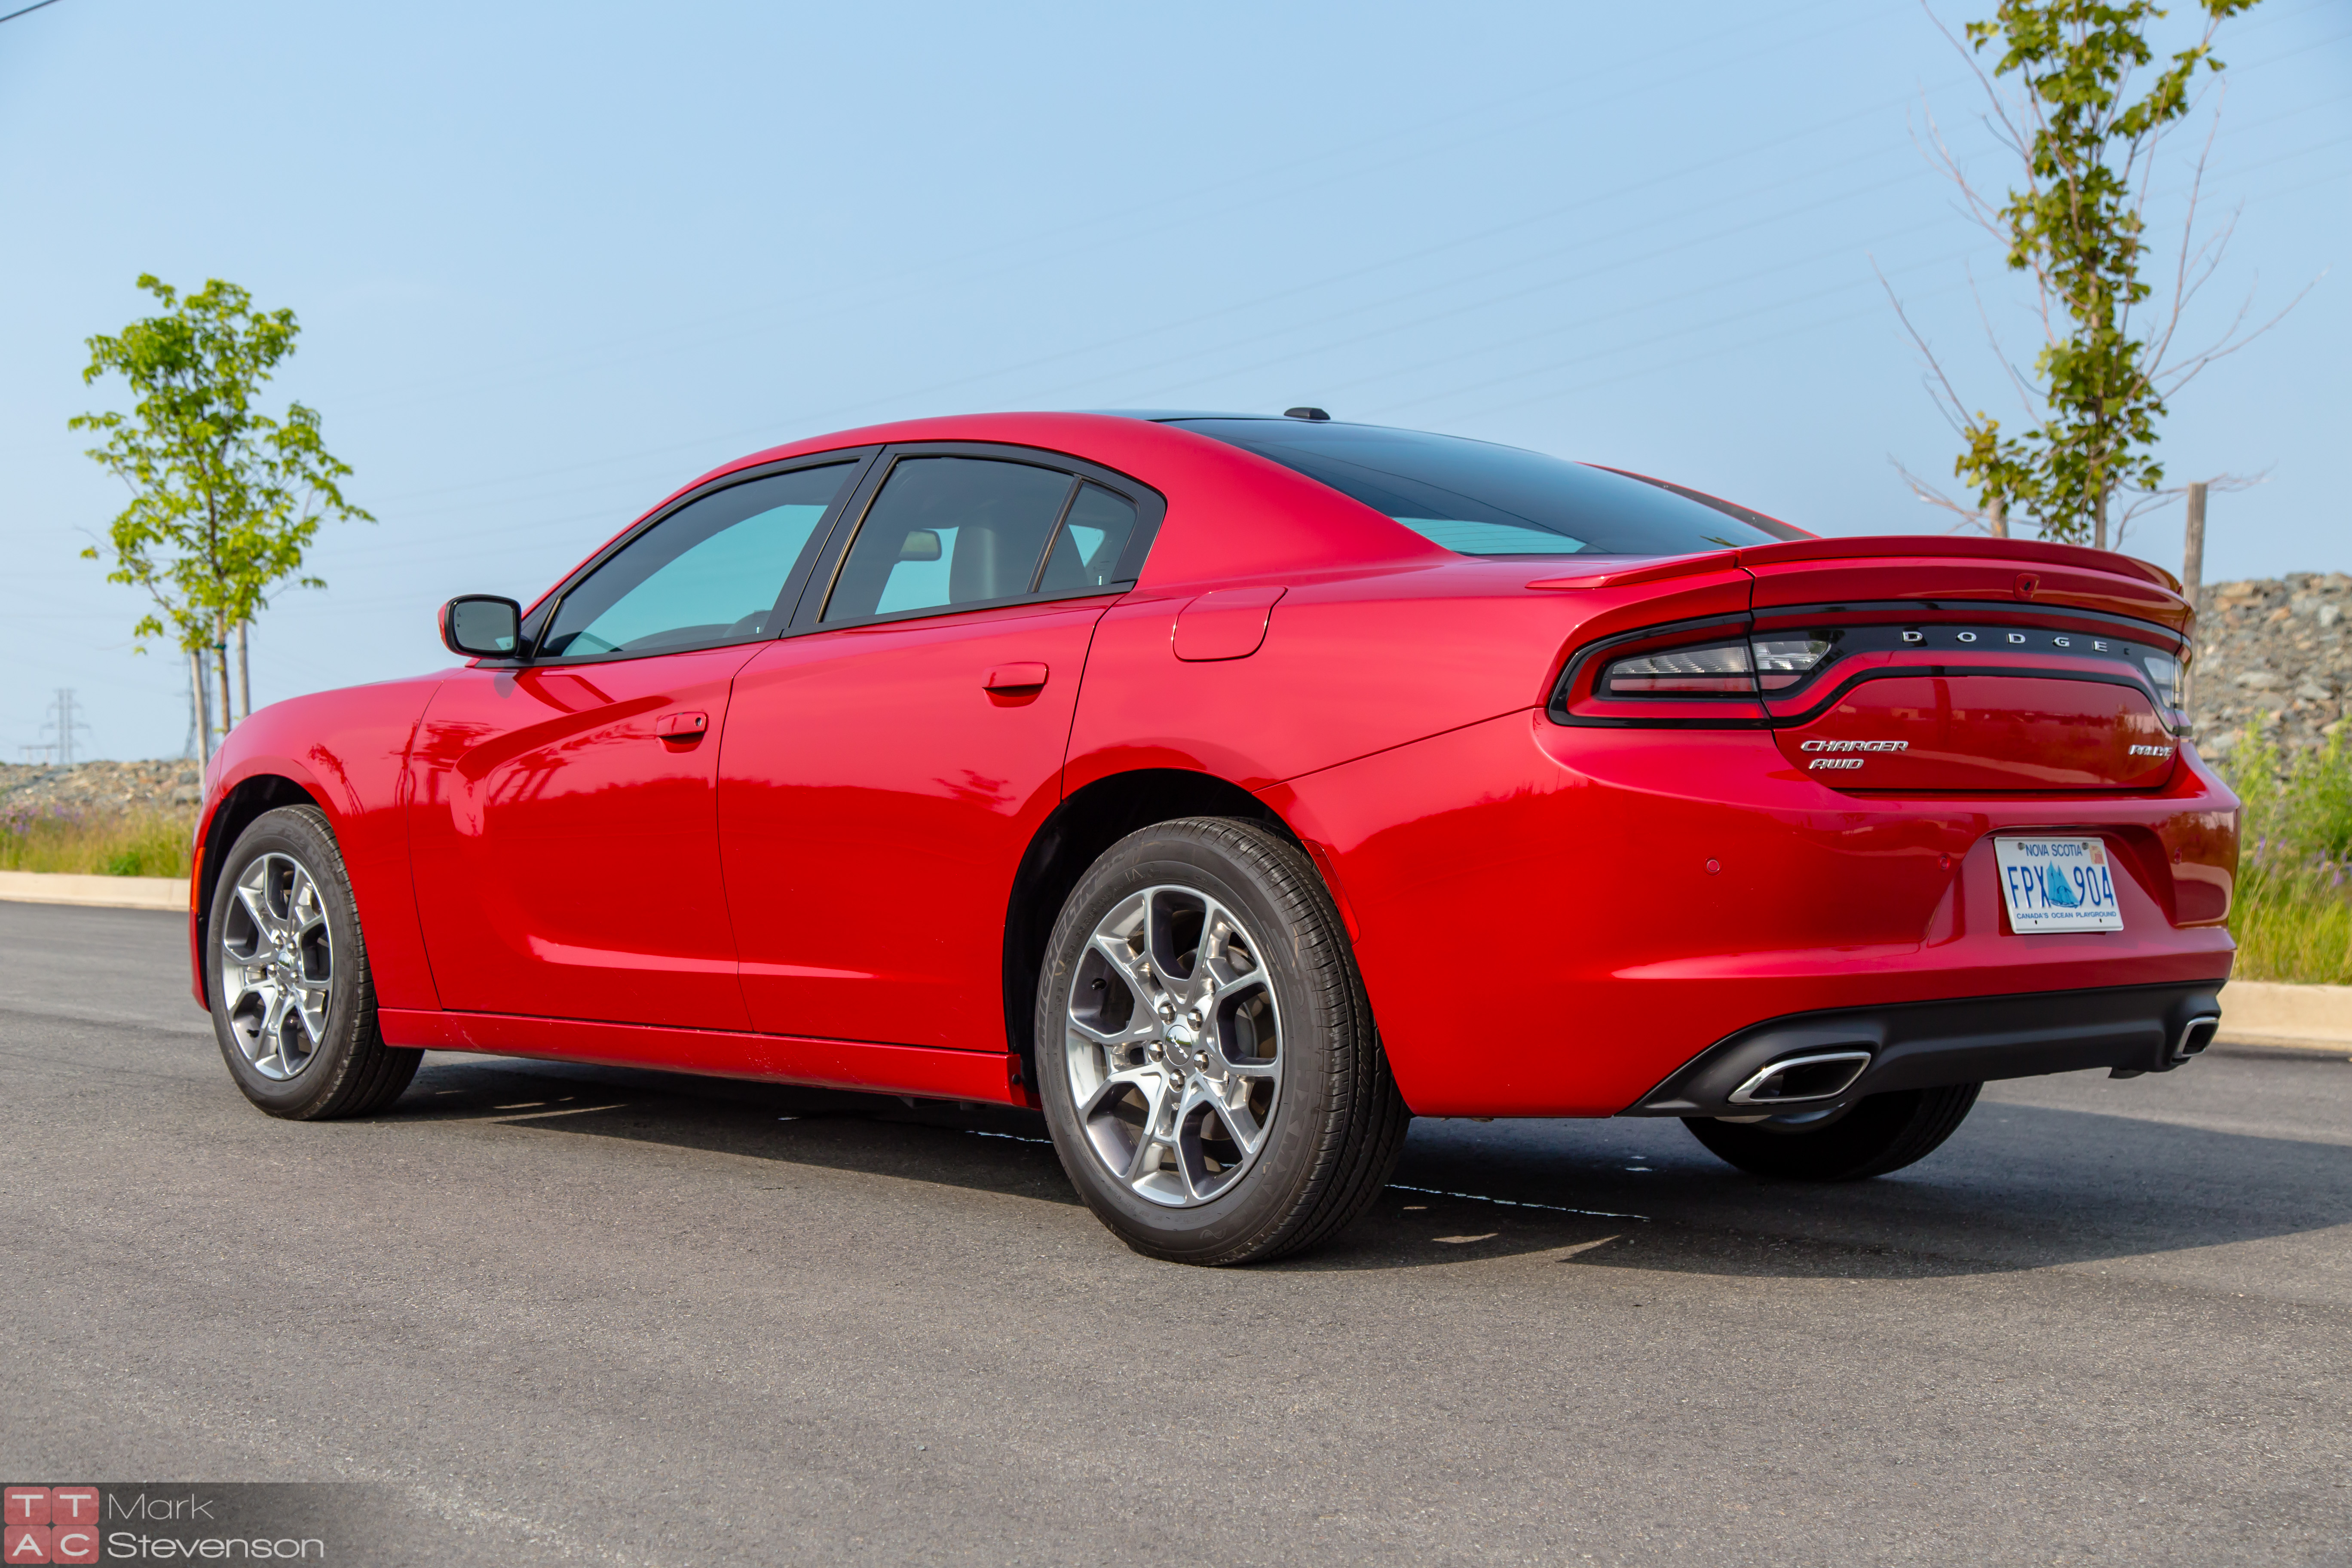 2015 Dodge Charger V6 AWD Review — Four-Door Pony Car2015 Dodge Charger Coupe